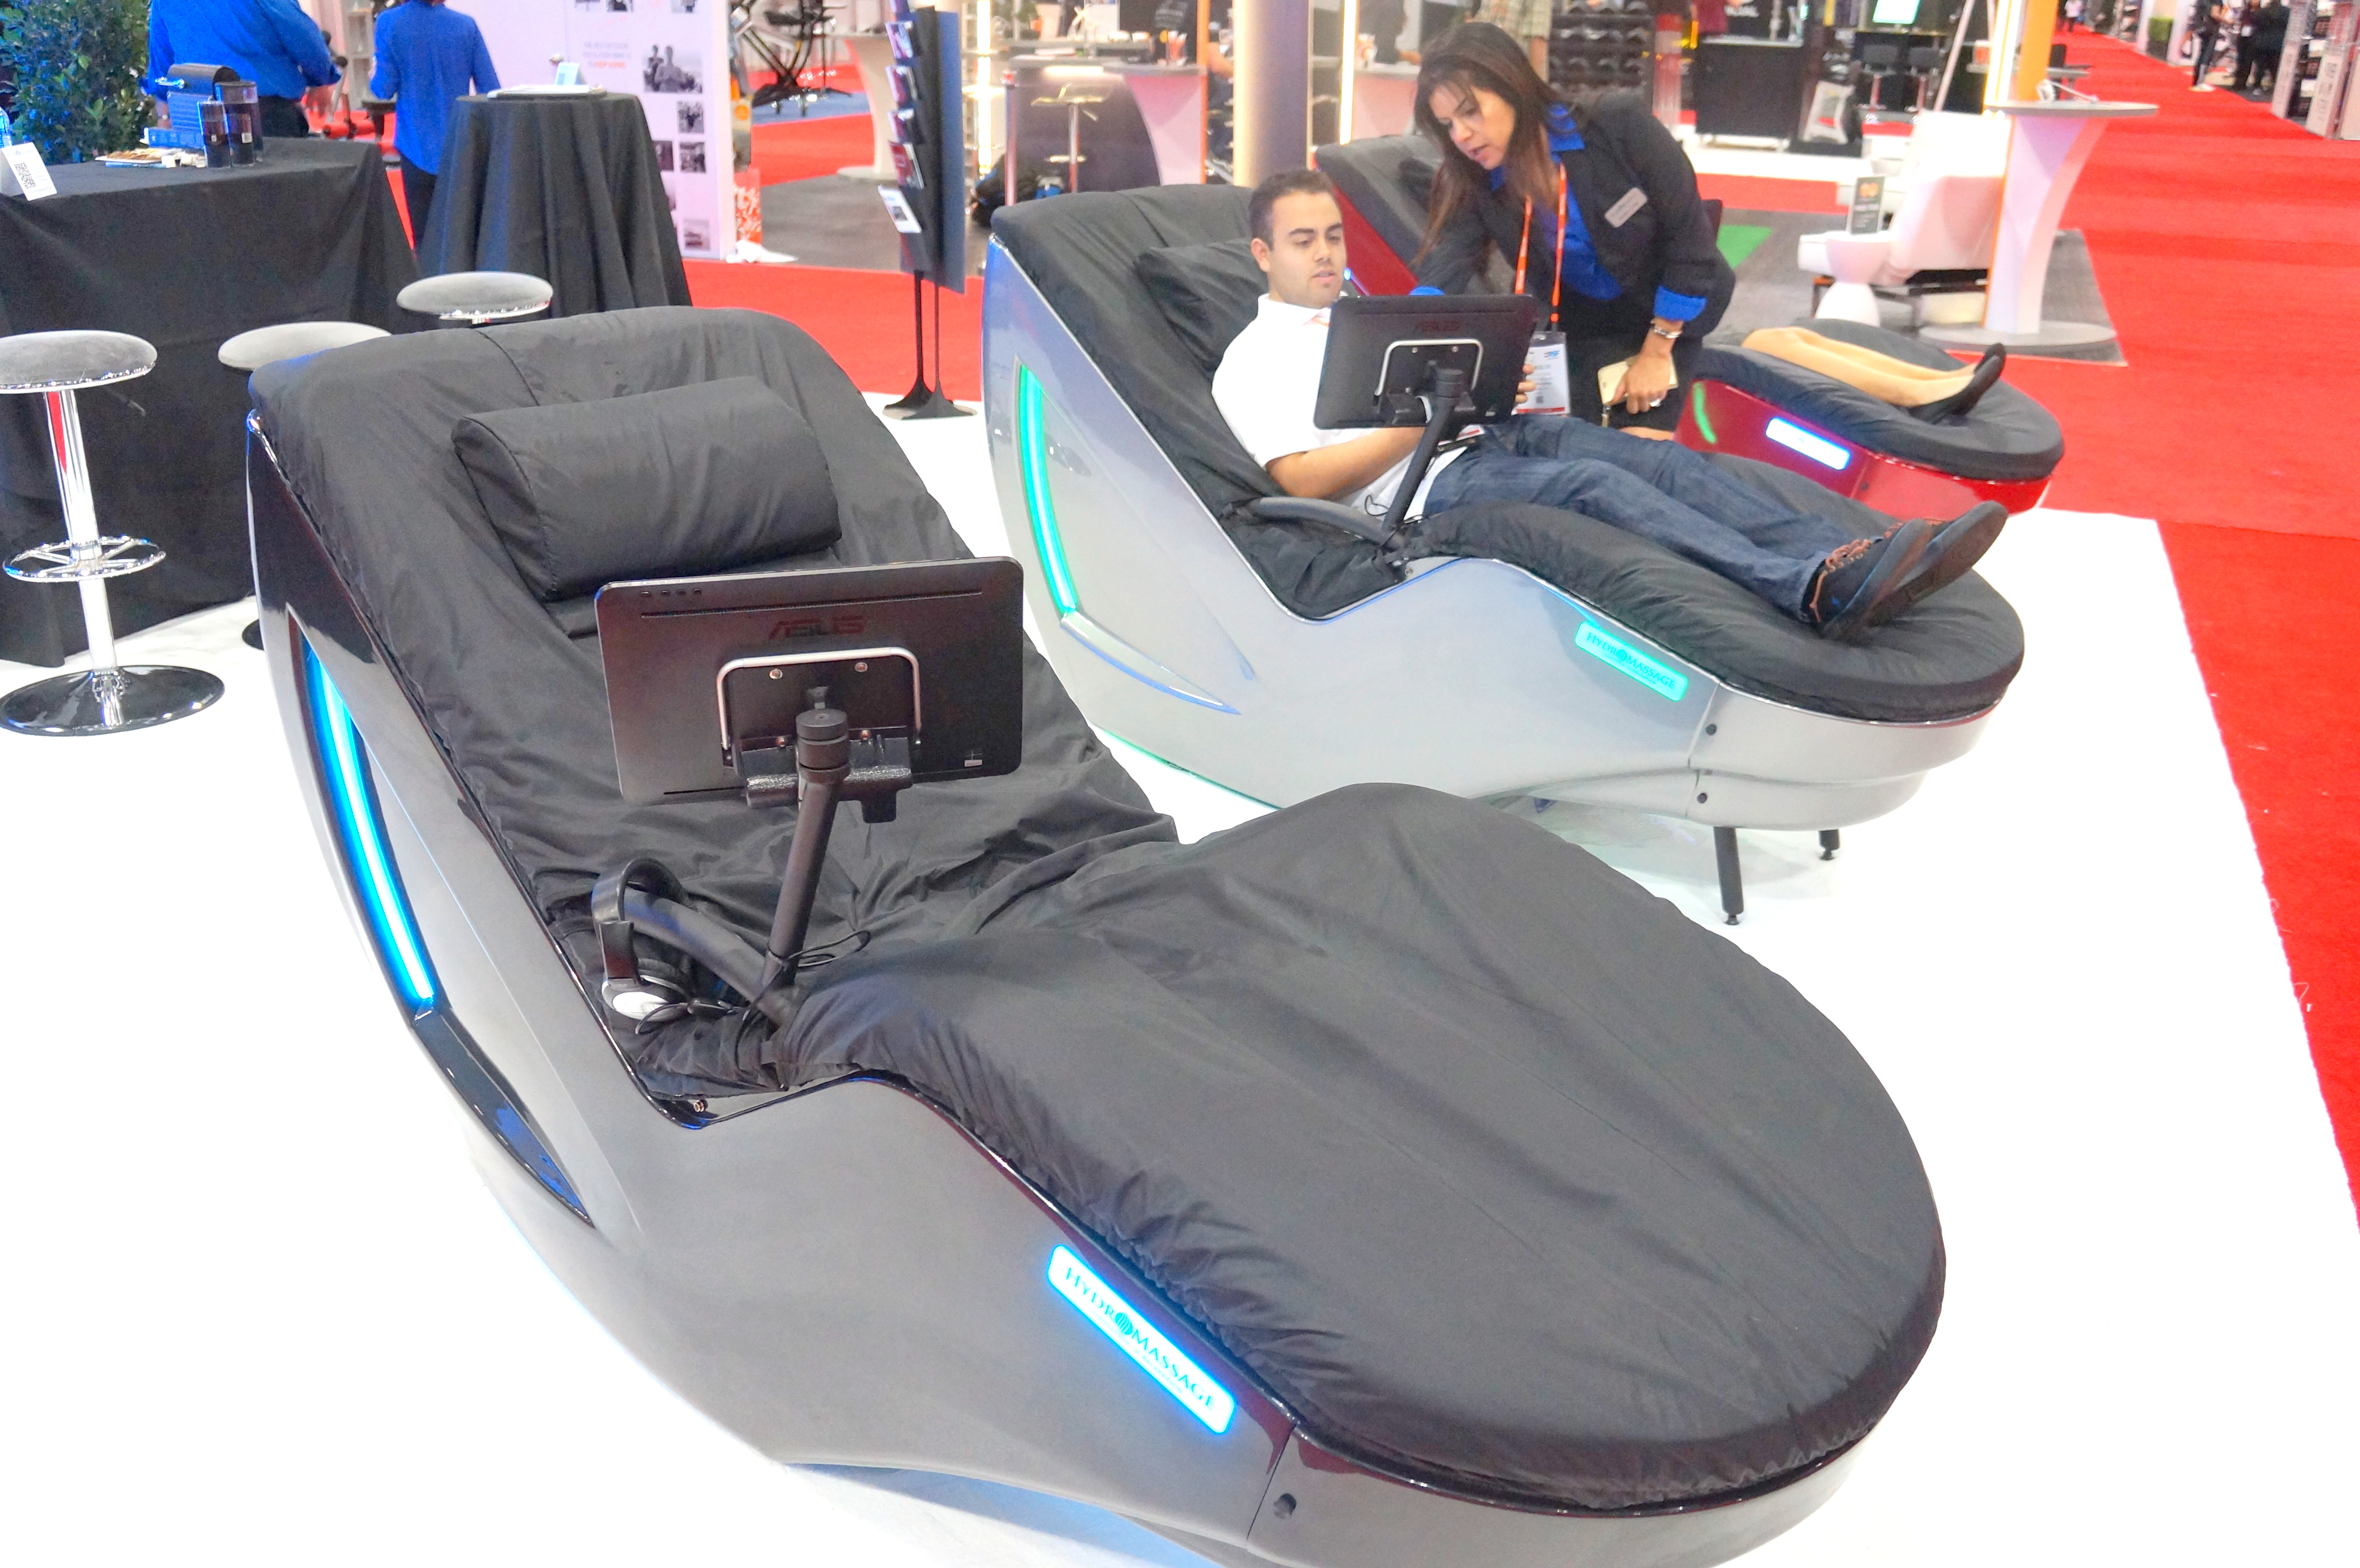 hydro massage chair student table and set hydromassage the official blog site of